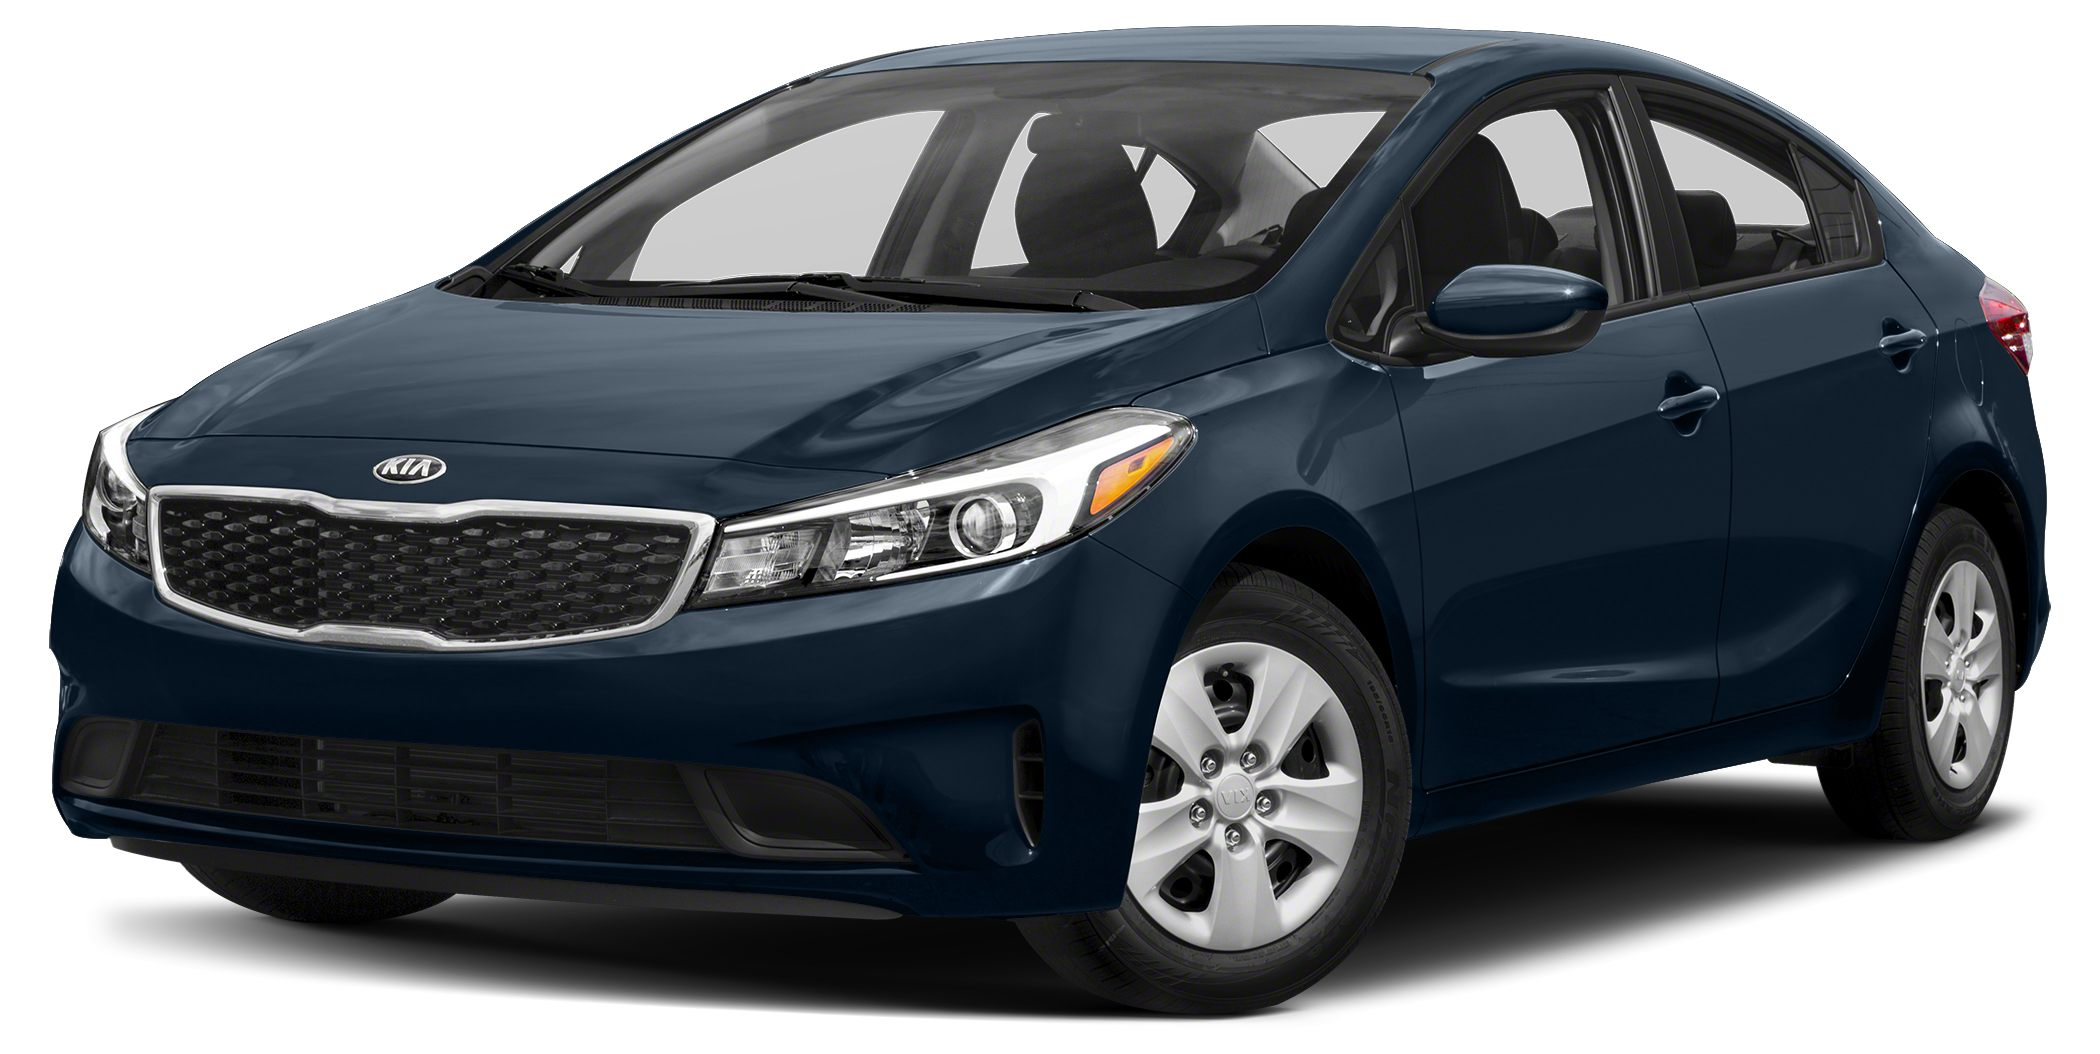 2017 Kia Forte LX Miles 15Color Deep Sea Blue Stock K16523 VIN 3KPFK4A79HE083843